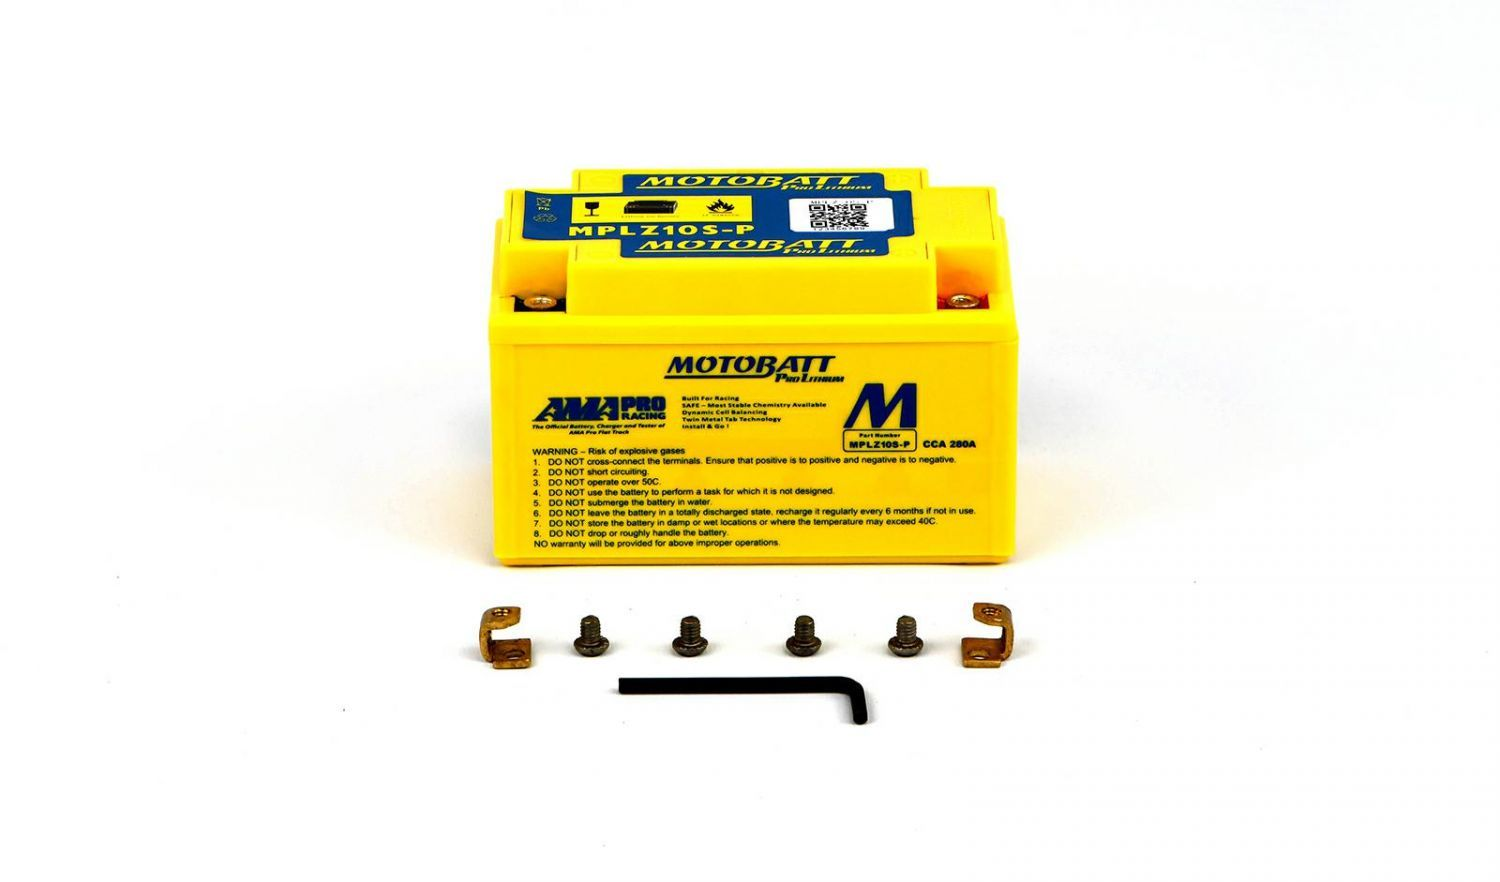 Motobatt Lithium Batteries - 501107ML image